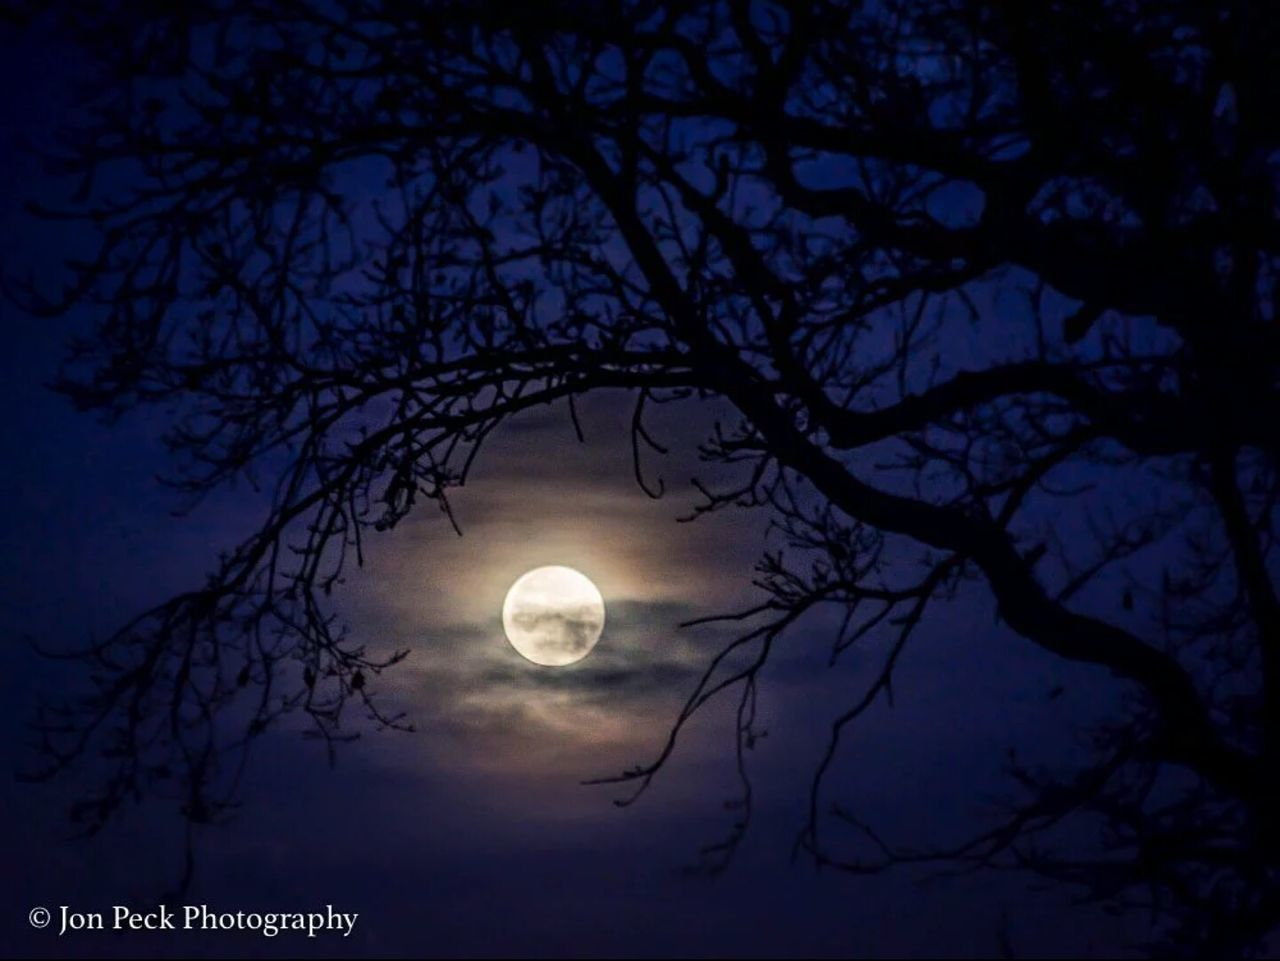 moon, tree, silhouette, night, beauty in nature, nature, branch, scenics, tranquility, no people, low angle view, outdoors, bare tree, sky, astronomy